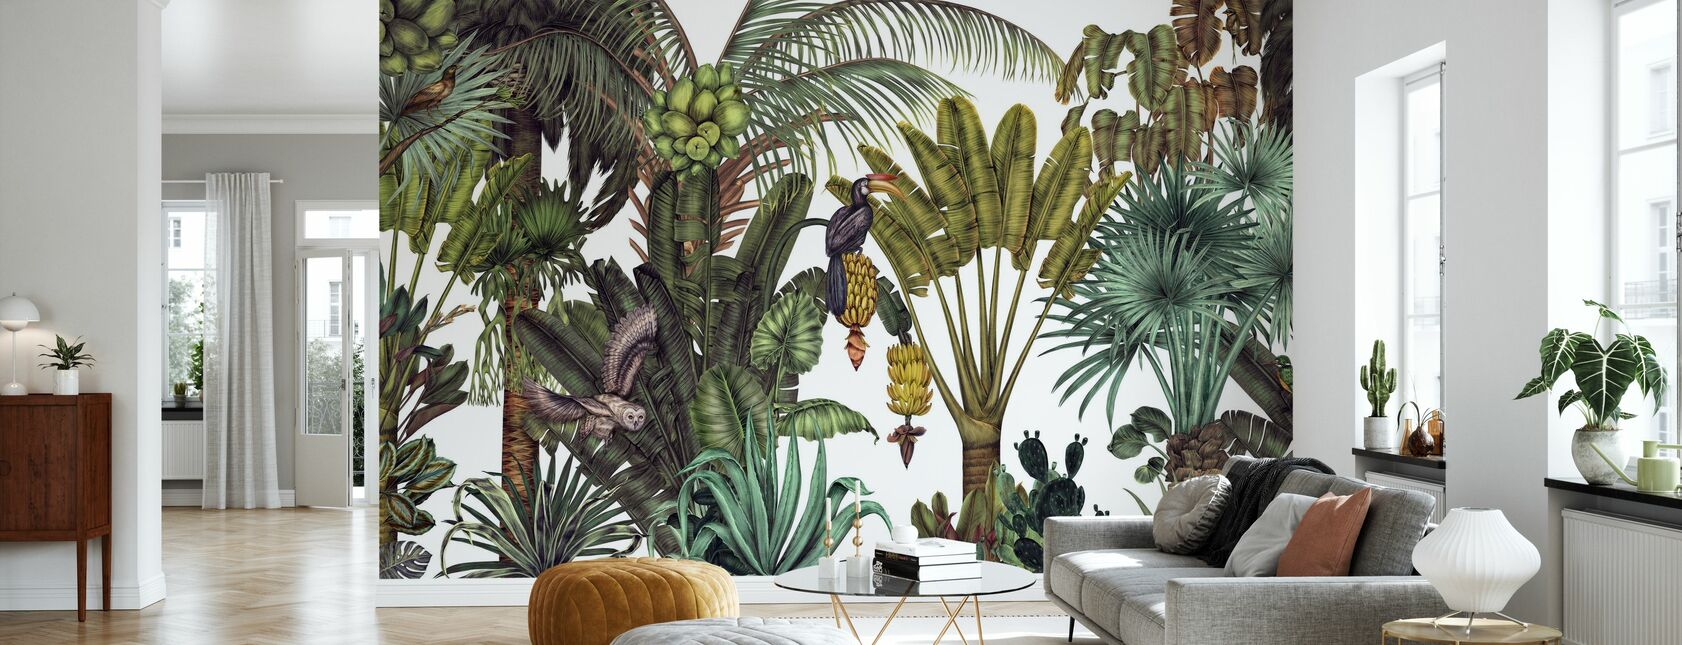 Find the Birds in the Jungle - Wallpaper - Living Room